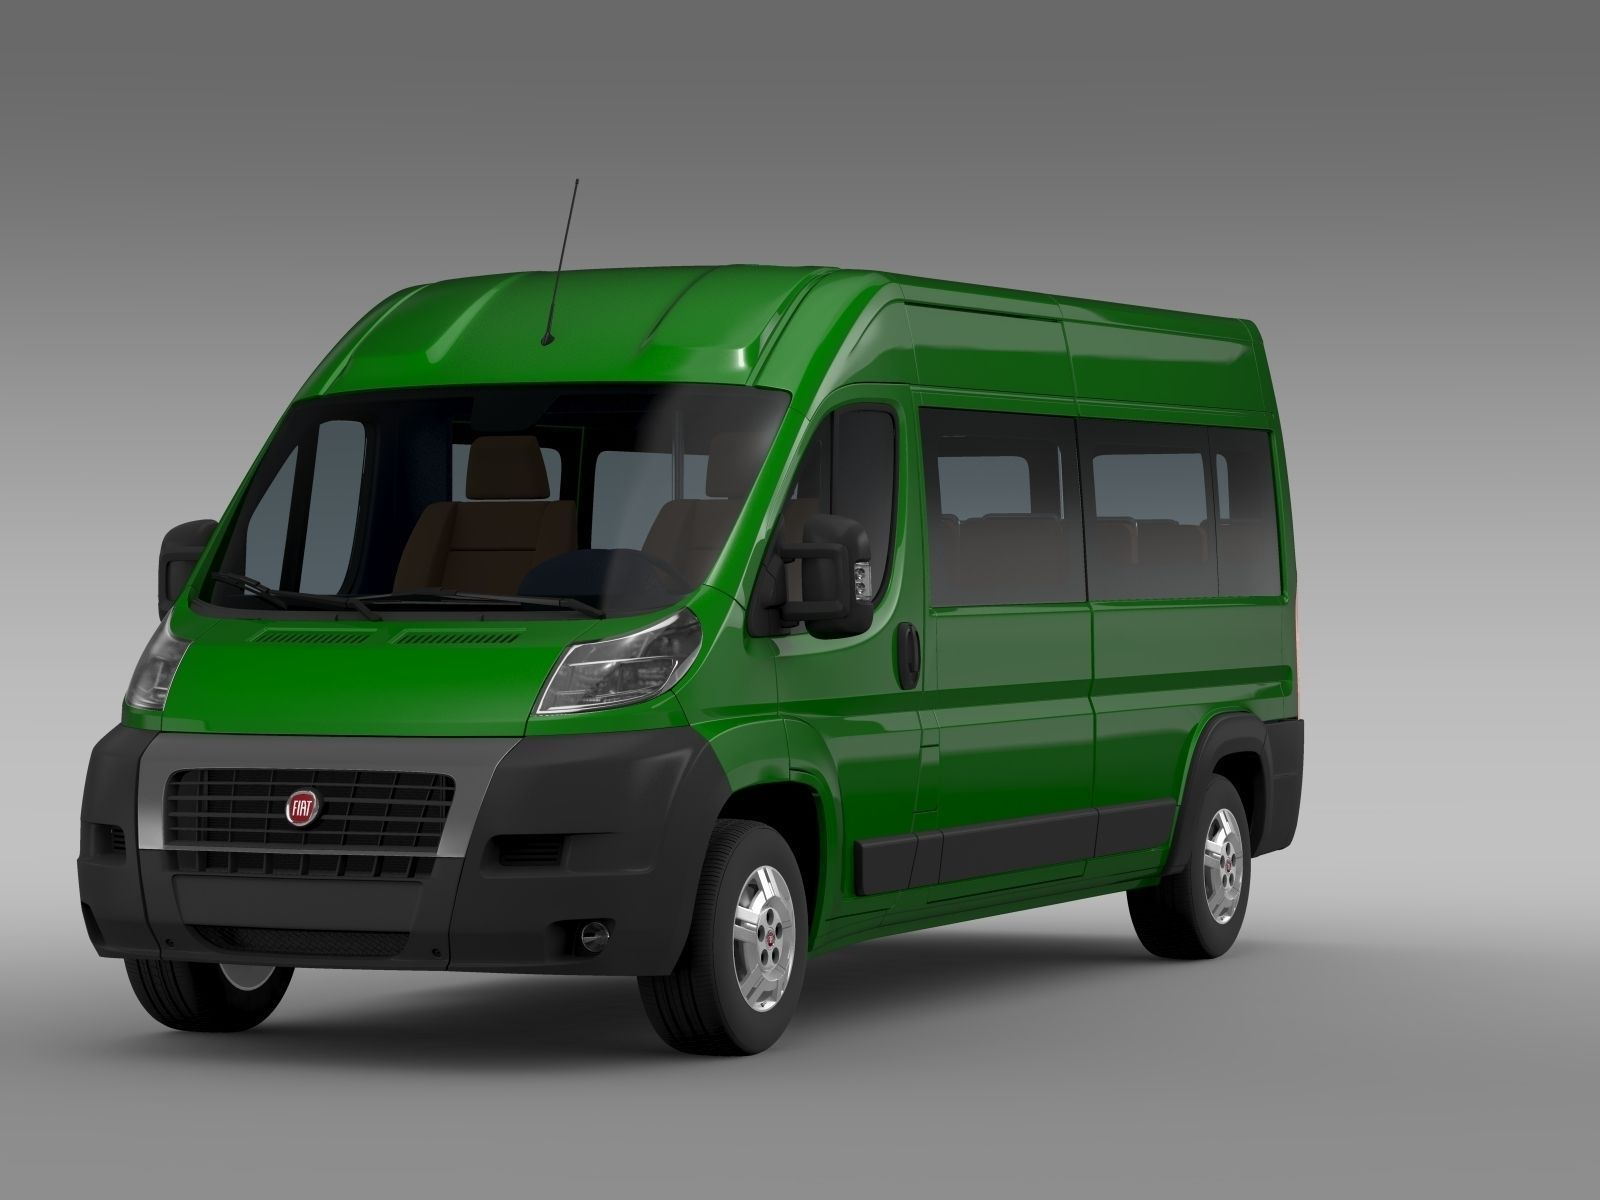 fiat ducato maxi bus l4h2 2006 2014 3d model max obj 3ds fbx c4d lwo lw lws. Black Bedroom Furniture Sets. Home Design Ideas